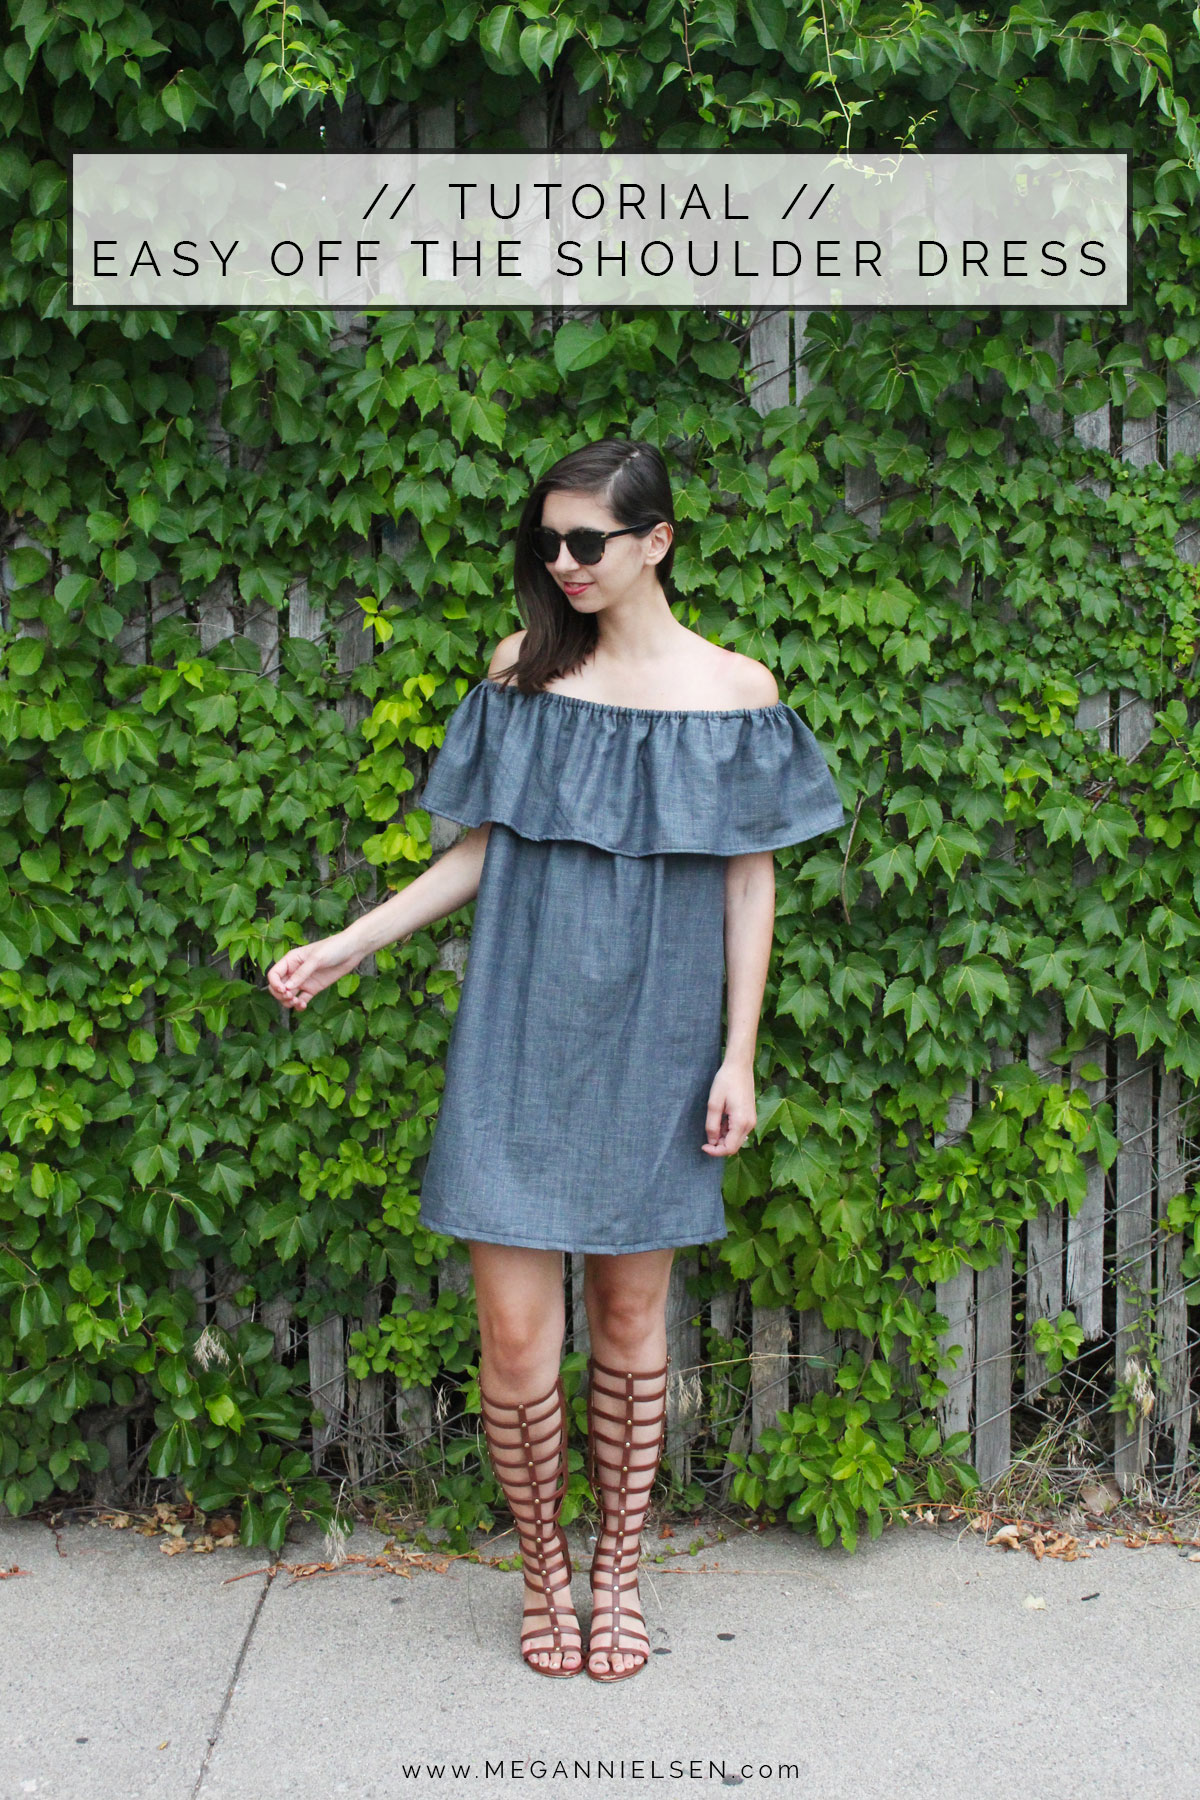 How To Make An Easy Off The Shoulder Dress Or Top